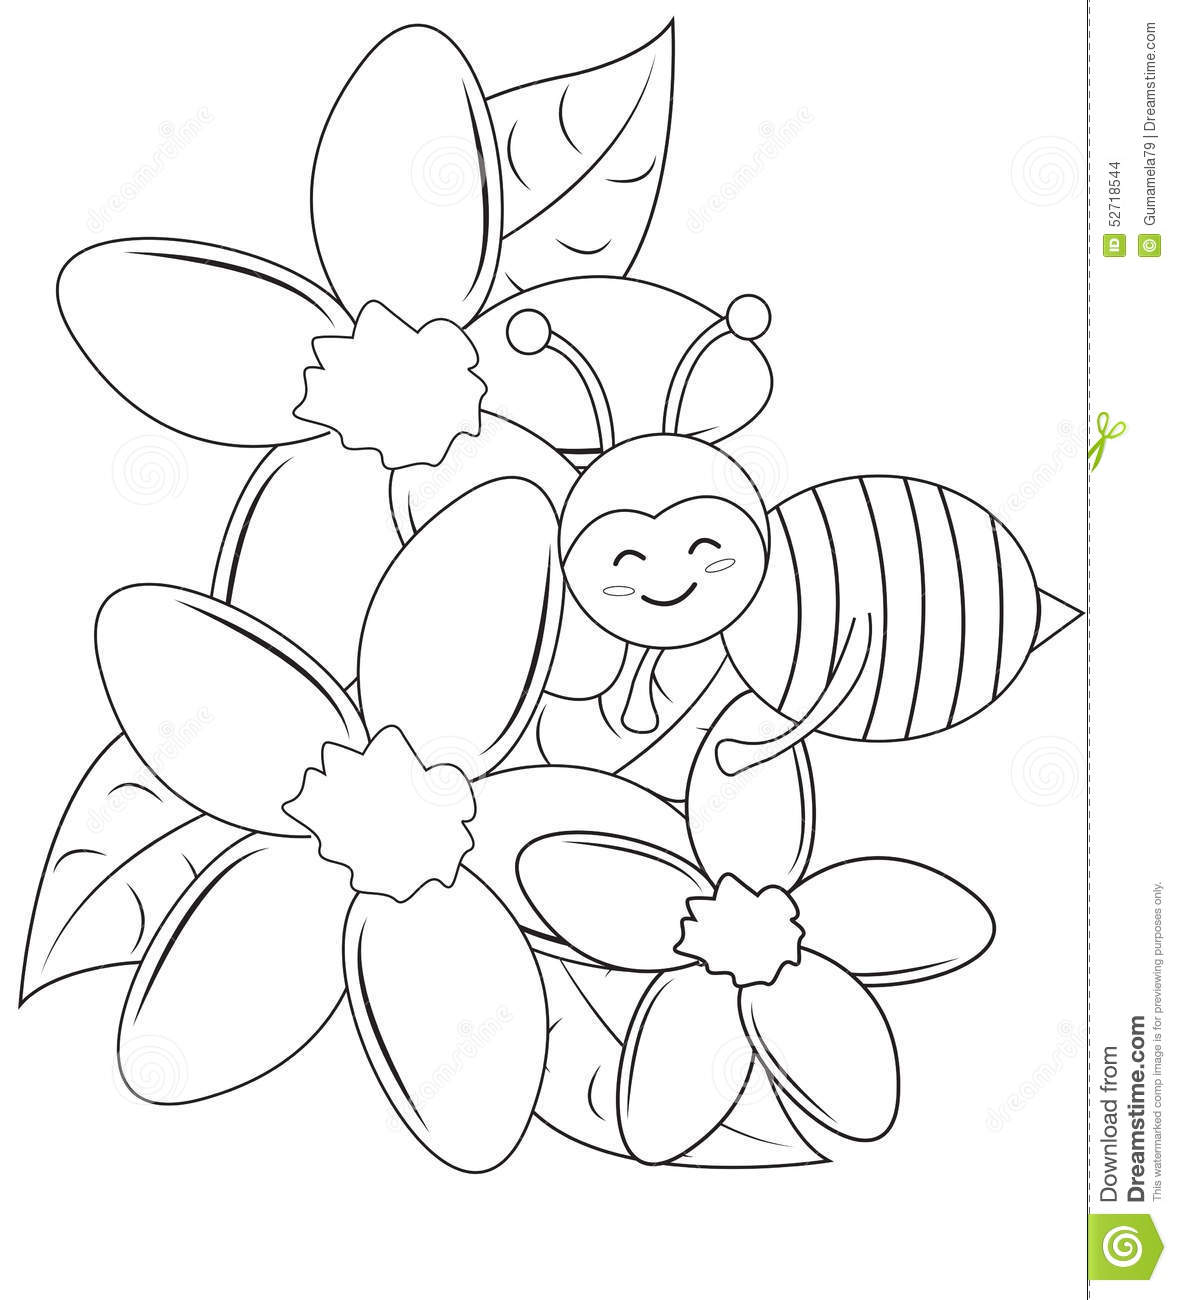 smiling bee with flowers coloring page stock illustration image